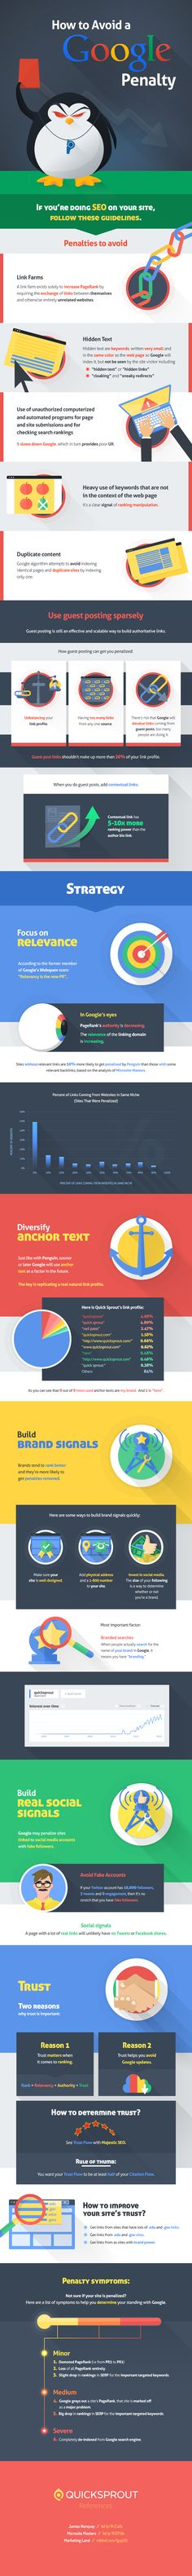 How to Make Sure You Never Get an Algorithmic or Manual Penalty - #infographic